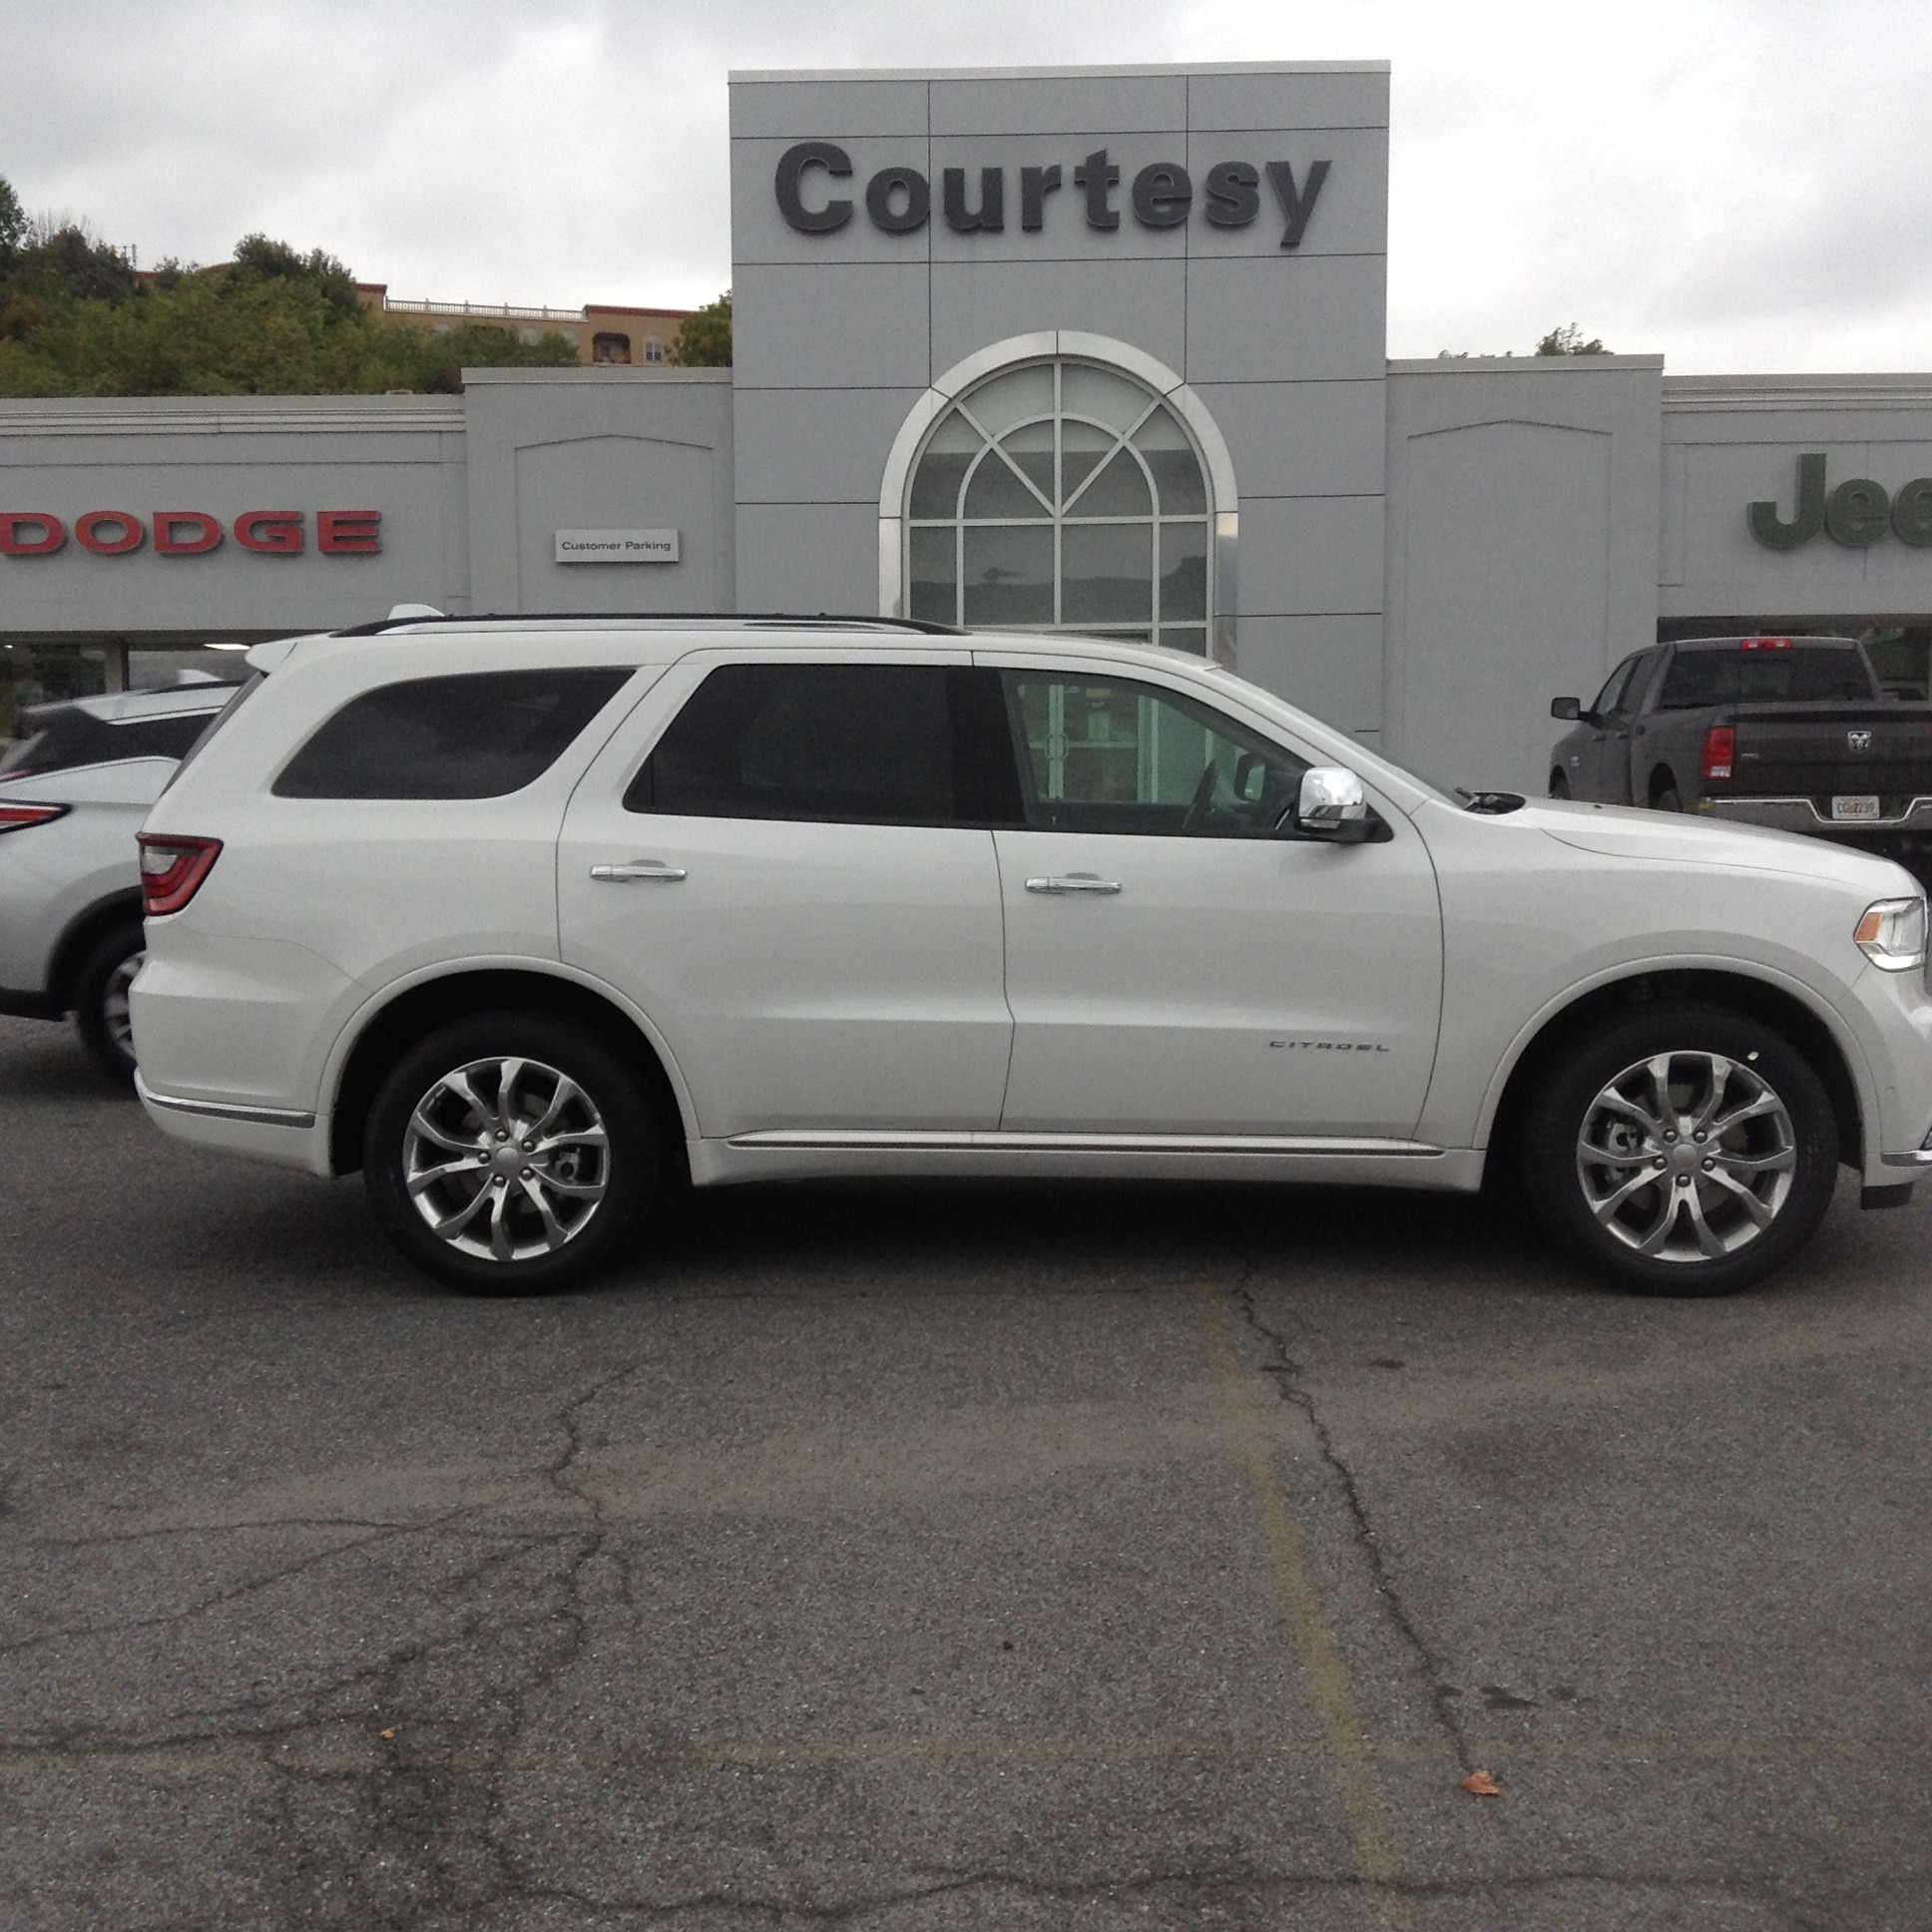 Dodge Durango In Altoona Pa Courtesy Chrysler Jeep Ram 2011 Fuel Filter 2018 Citadel Awd Sport Utility